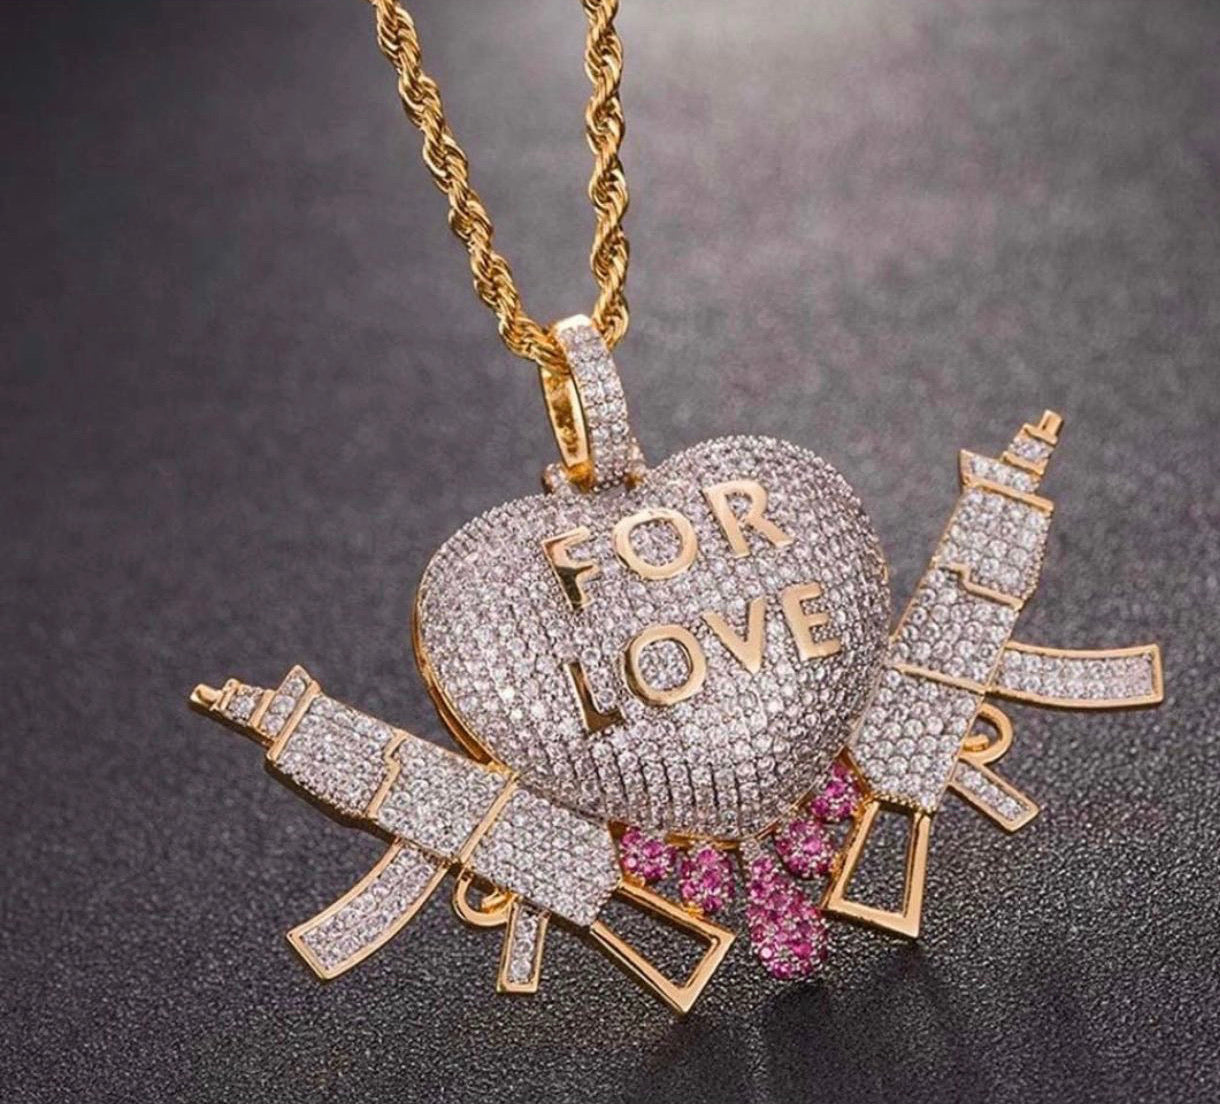 For Love Pendant & Necklace